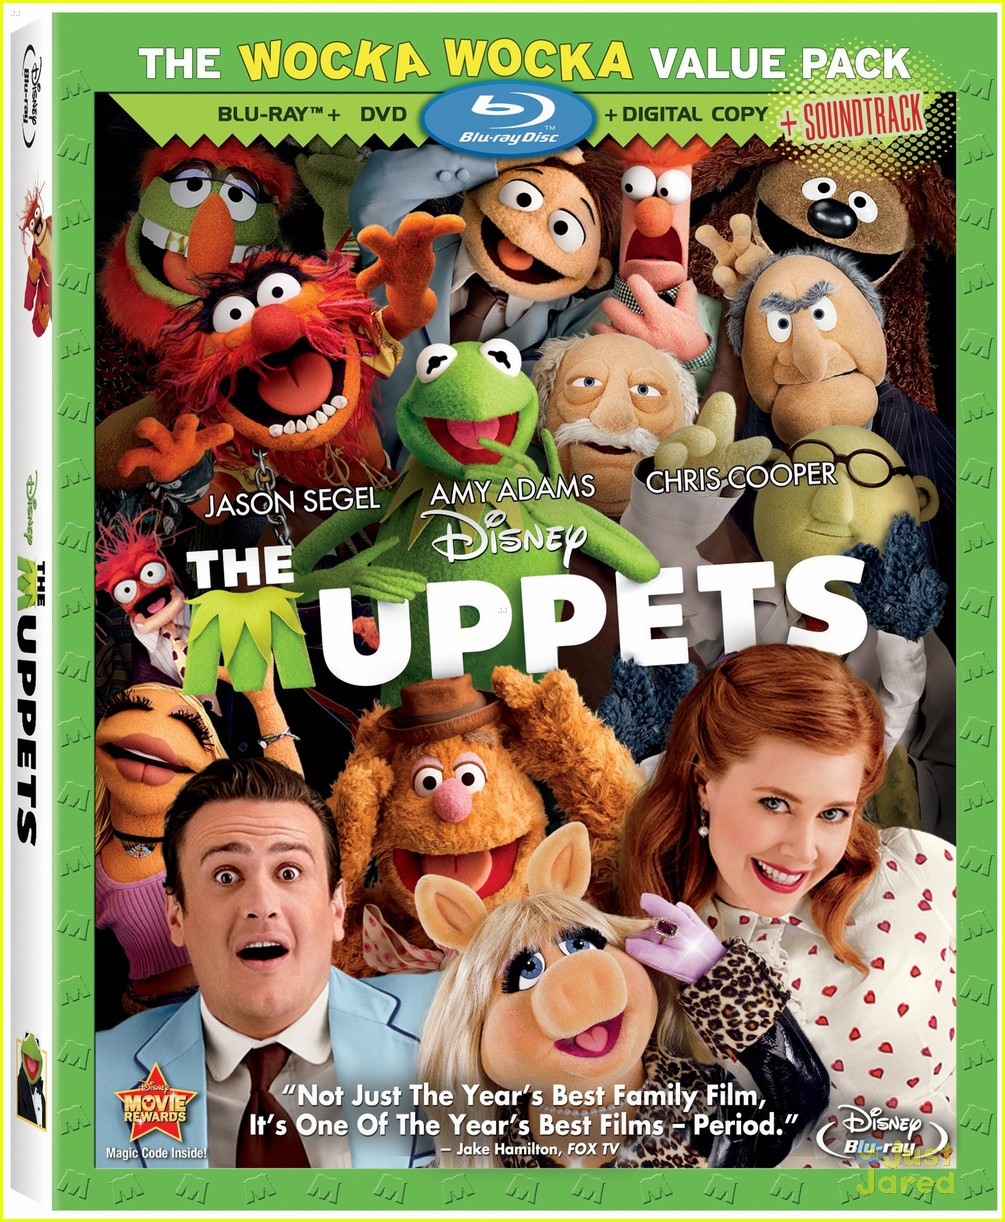 muppets dvd covers 03